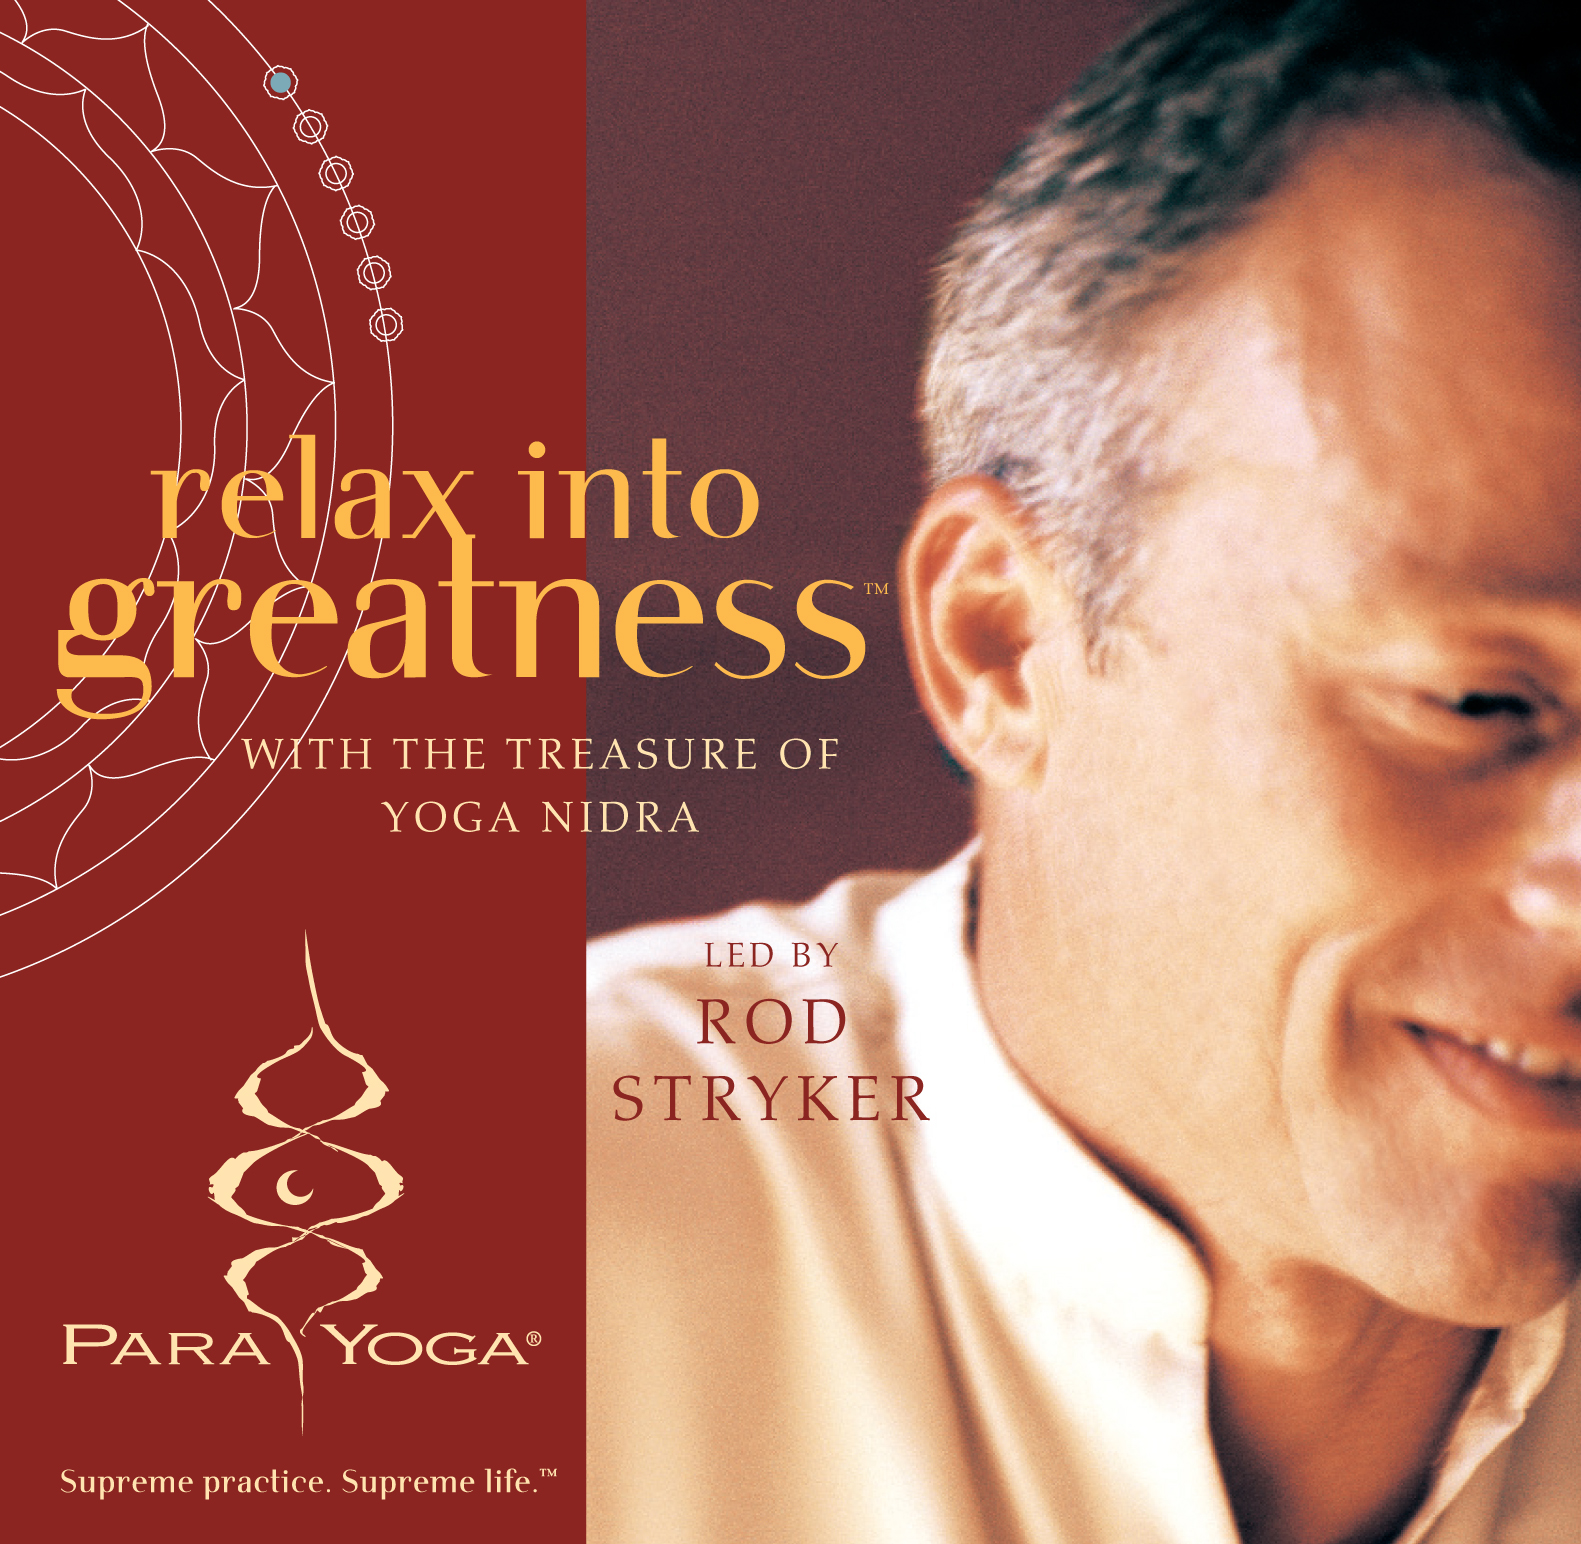 Relax Into Greatness CD Audio 88 Minutes